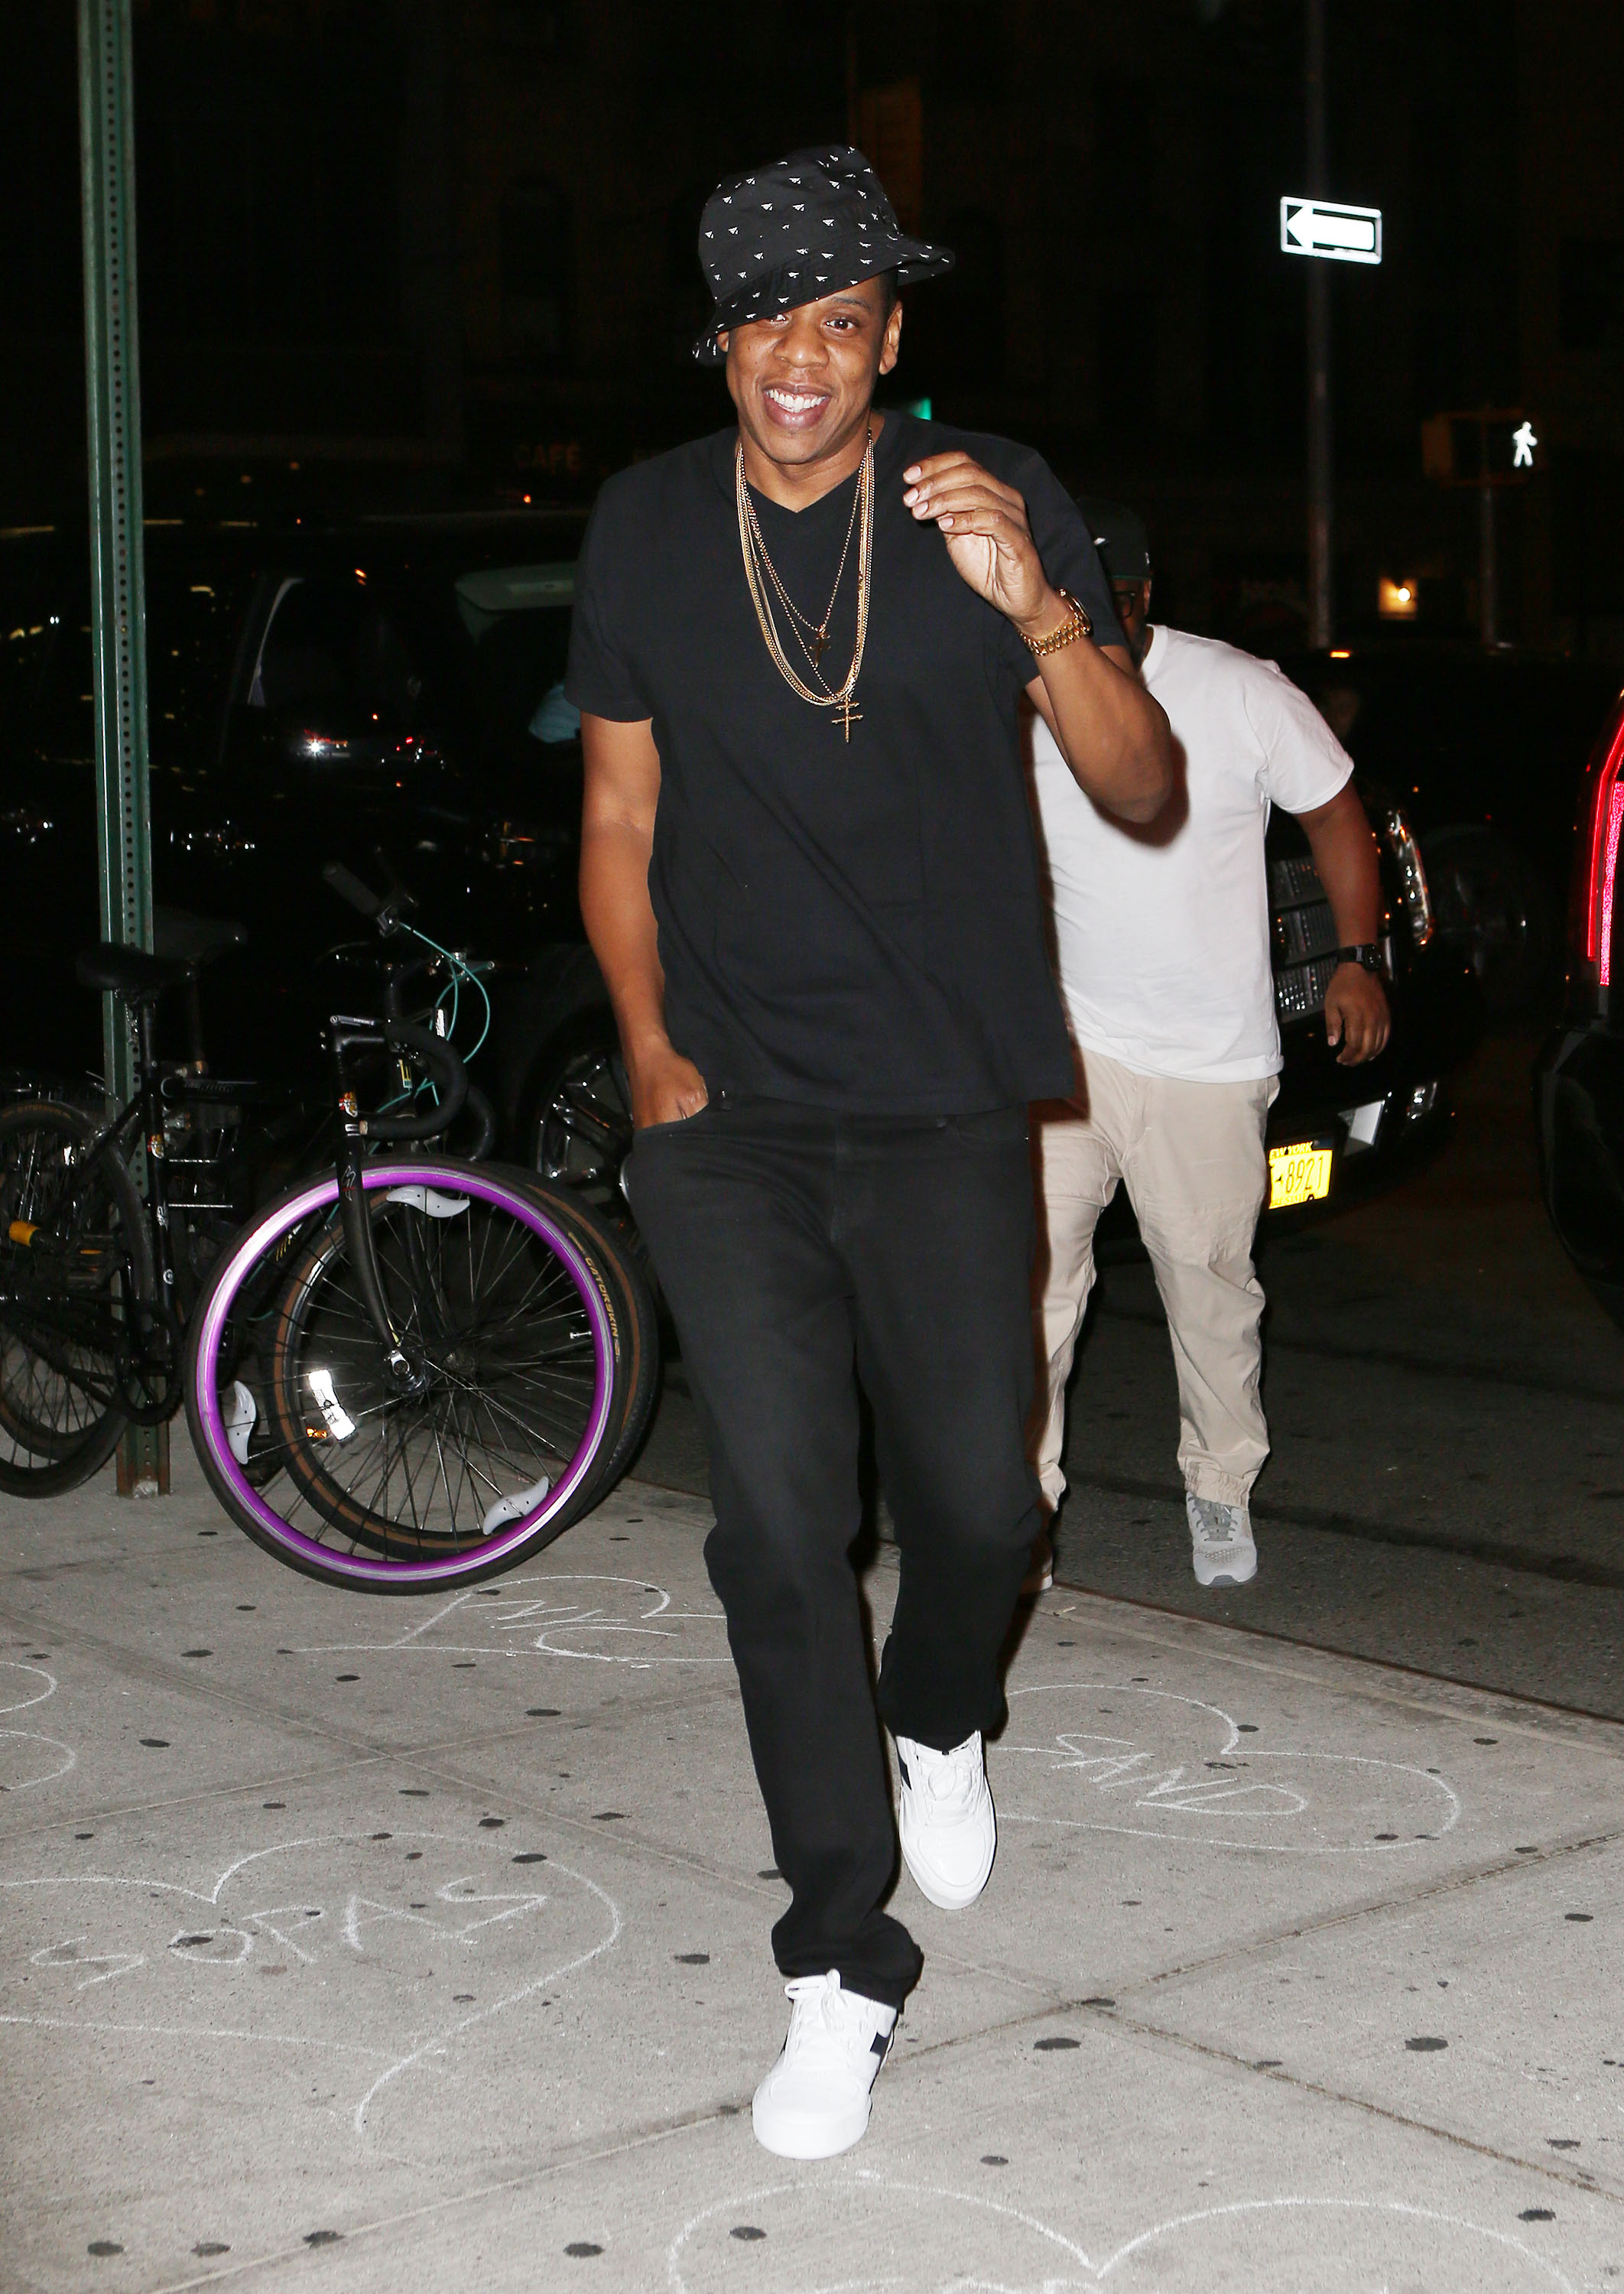 Beyonce and Jay Z go to dinner at La Esquina in NYC